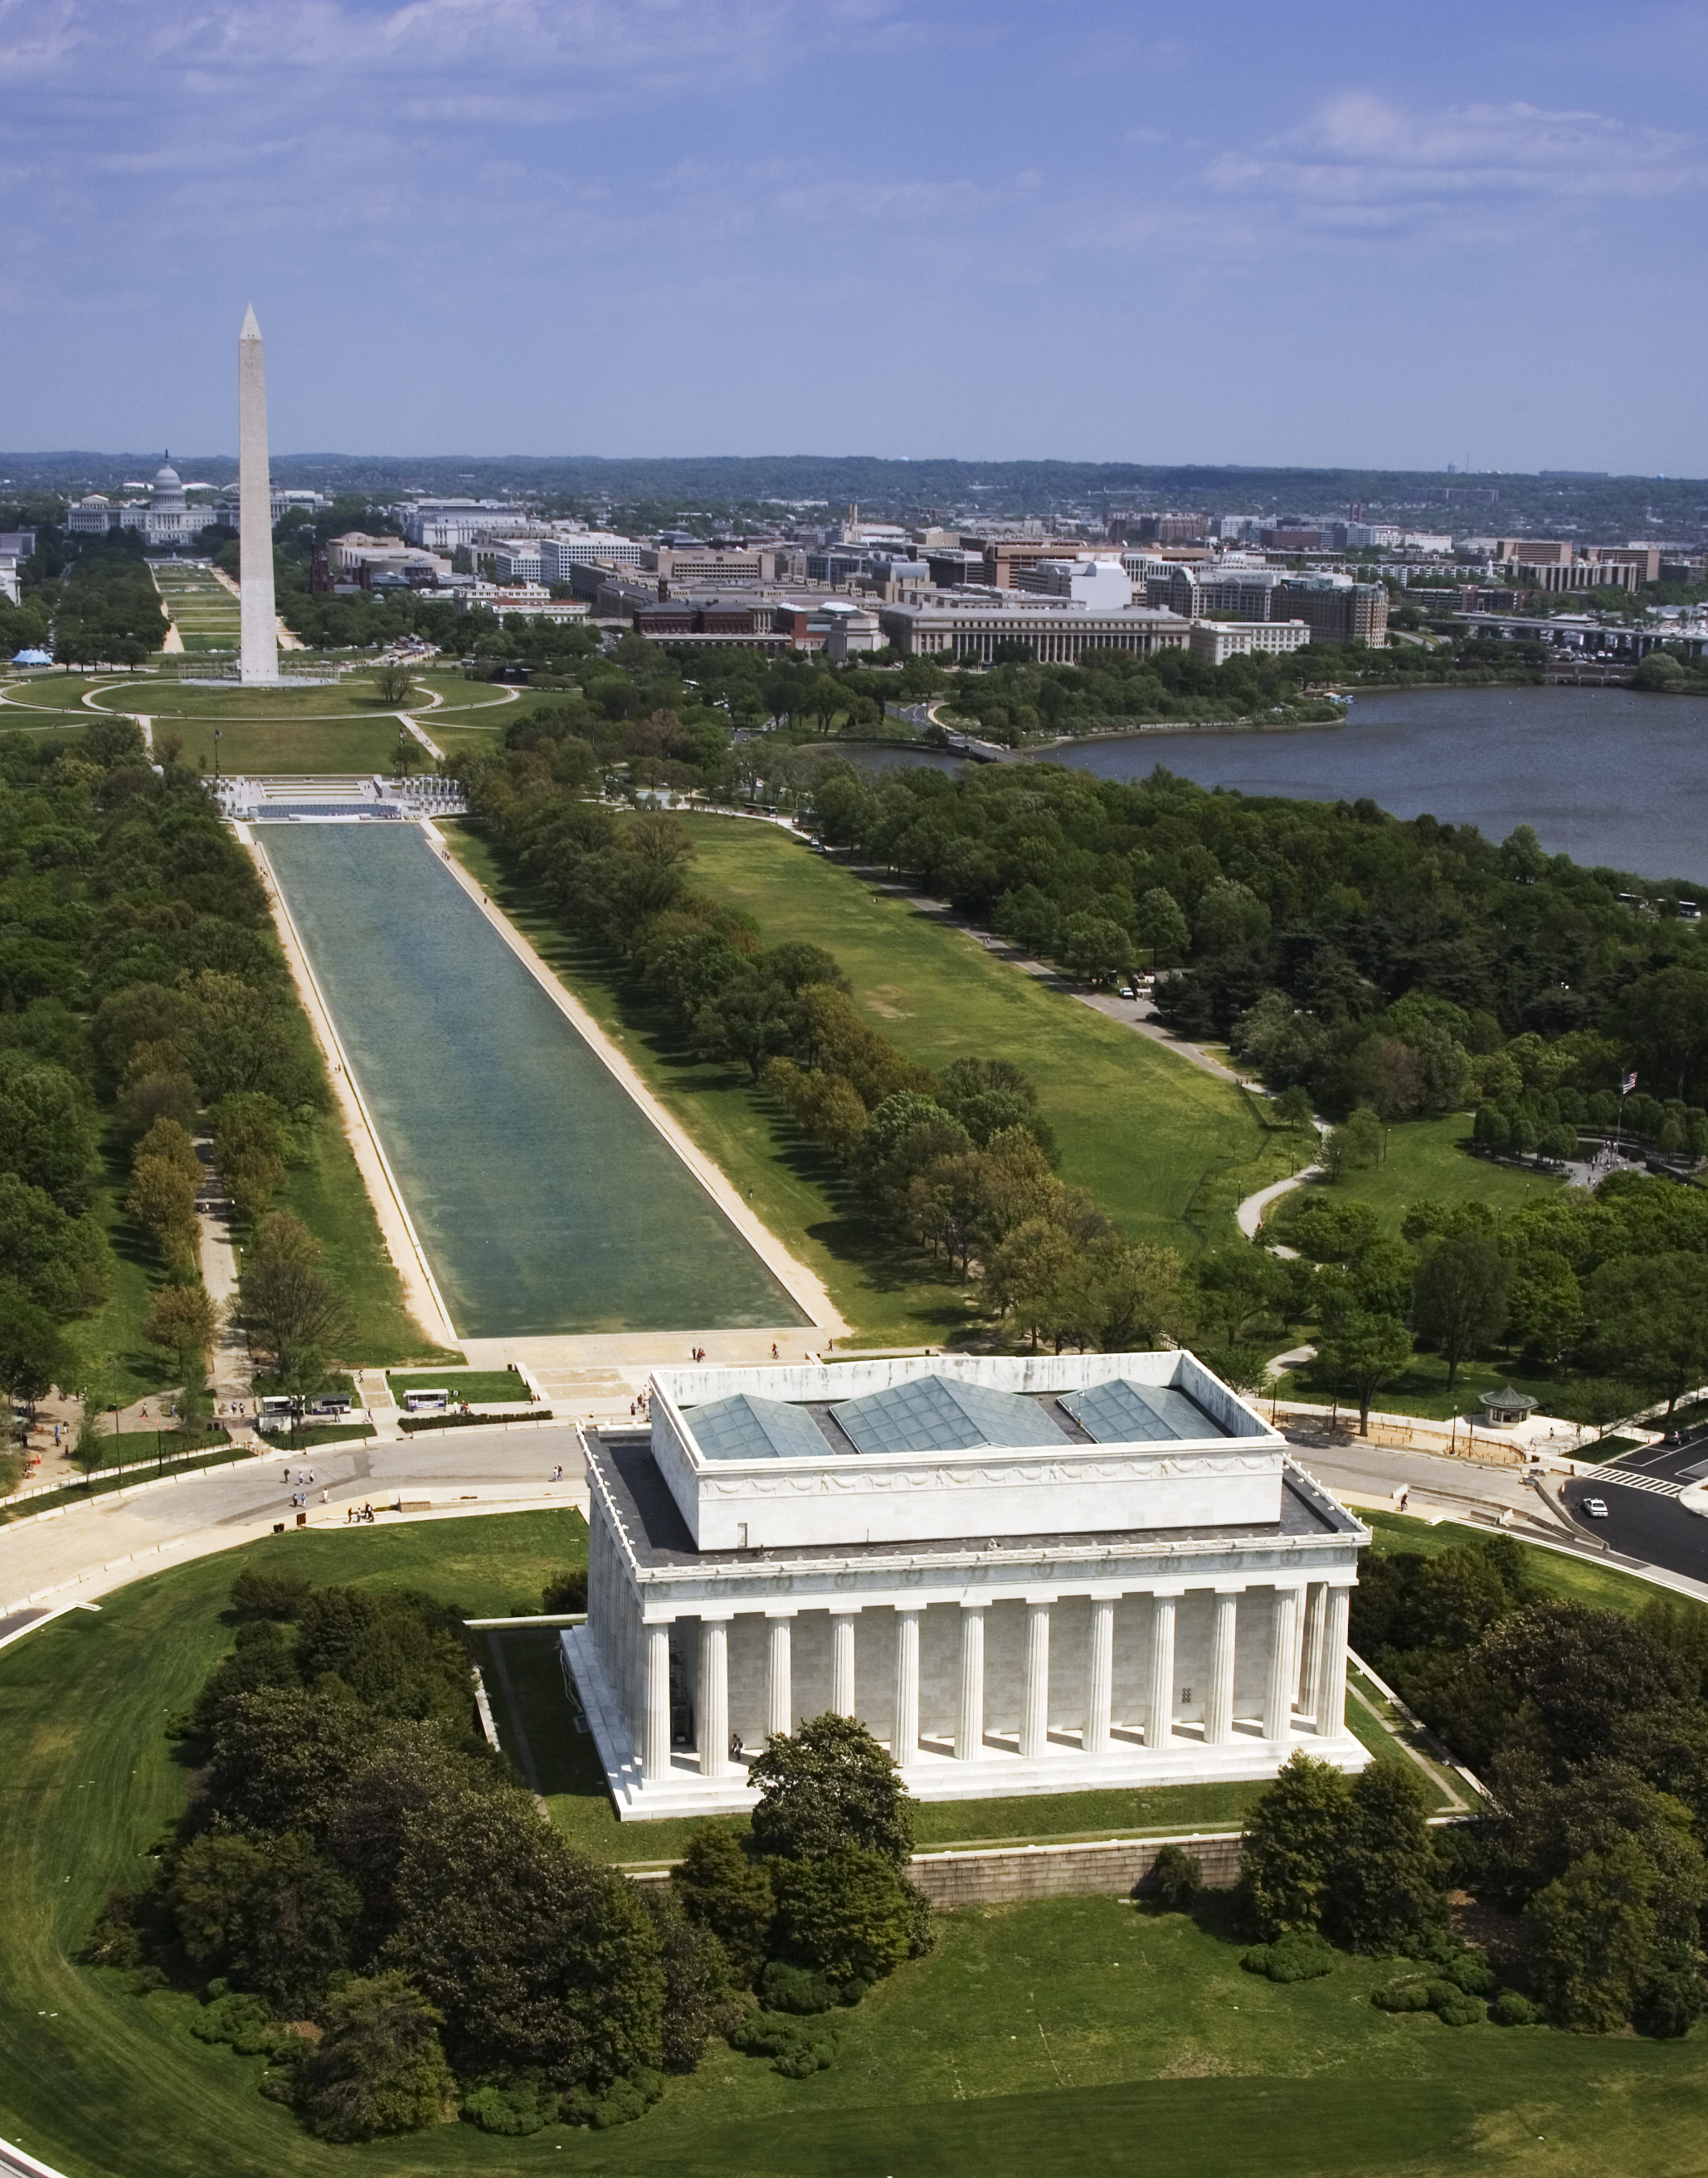 Aerial view of the Lincoln Memorial, reflecting pool, and Washington Monument